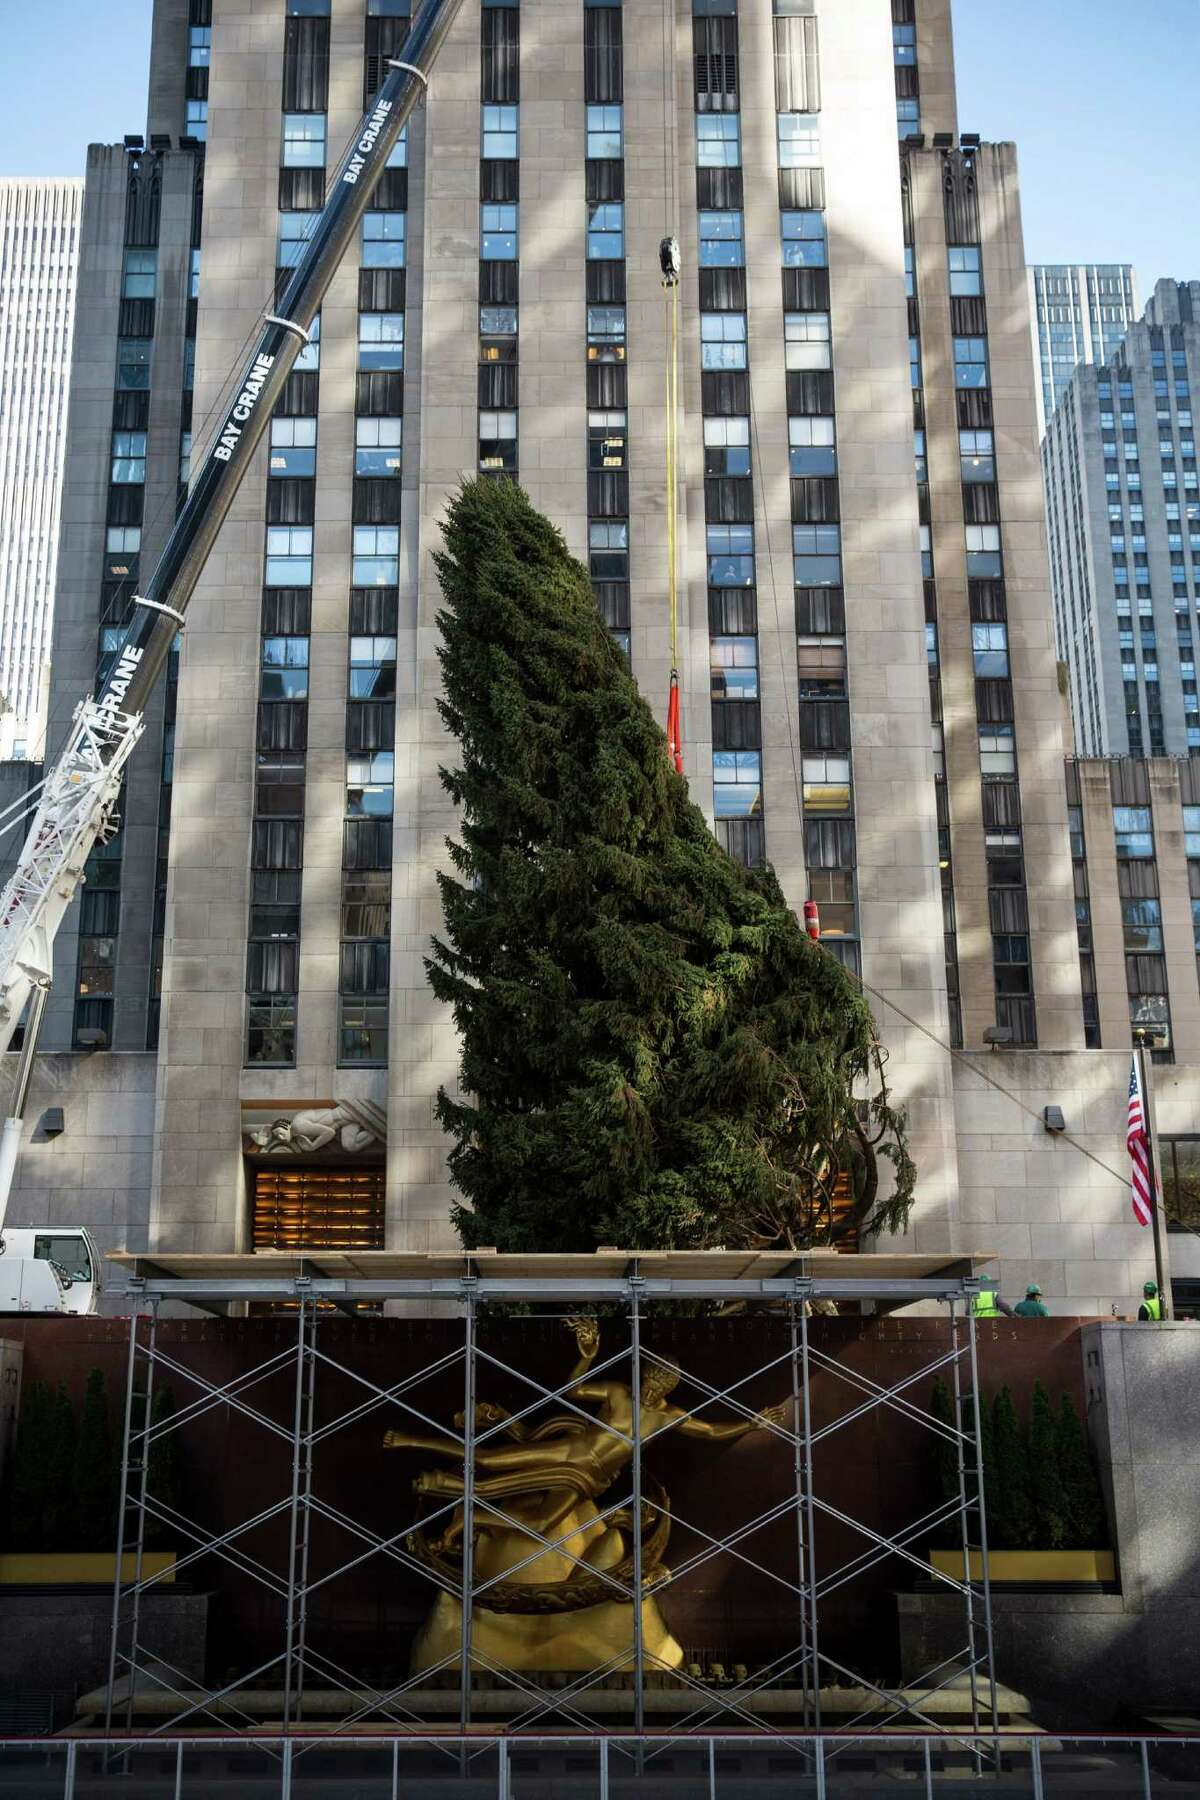 NEW YORK, NY - NOVEMBER 08: A 76-foot tall Norway Spruce, from Shelton, CT, is lifted into position as the 2013 Rockefeller Center Christmas Tree on November 8, 2013 in New York City. The tree comes from the Vargoshe family, it was likely planted in the 1950s. (Photo by Andrew Burton/Getty Images) ORG XMIT: 187493731